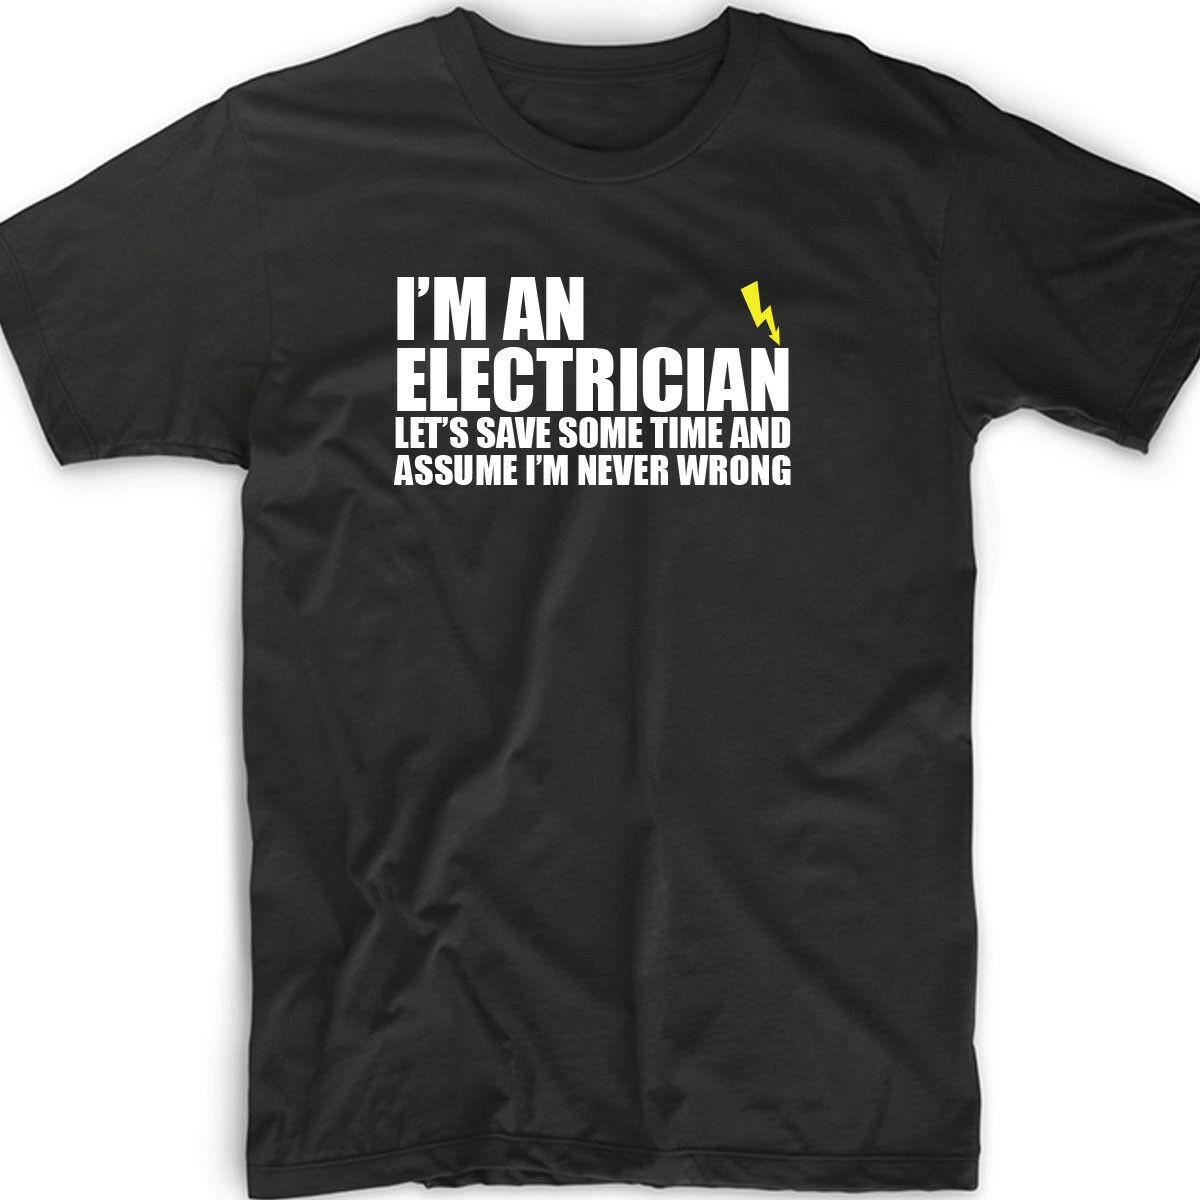 7544a1ca0 I'm An Electrician T Shirt Definition Funny Electric Gift Career Tee Men's  Funny free shipping Unisex Casual top